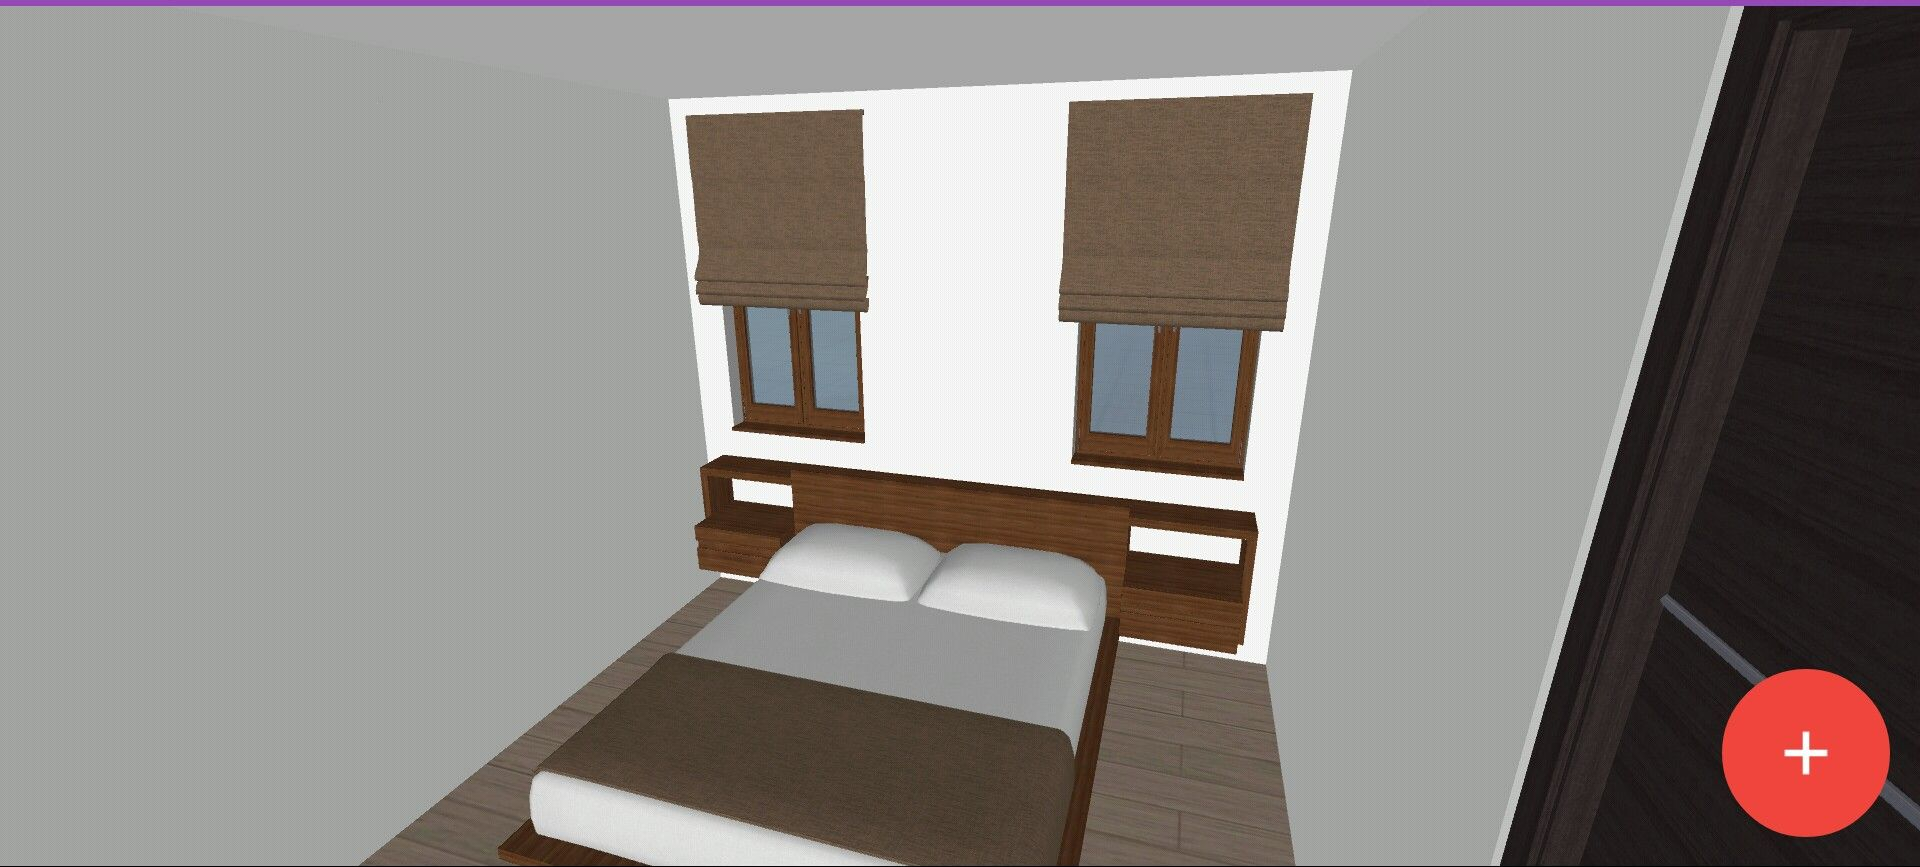 Bedroom Ideas For 9x9 Room Size Furniture Layout